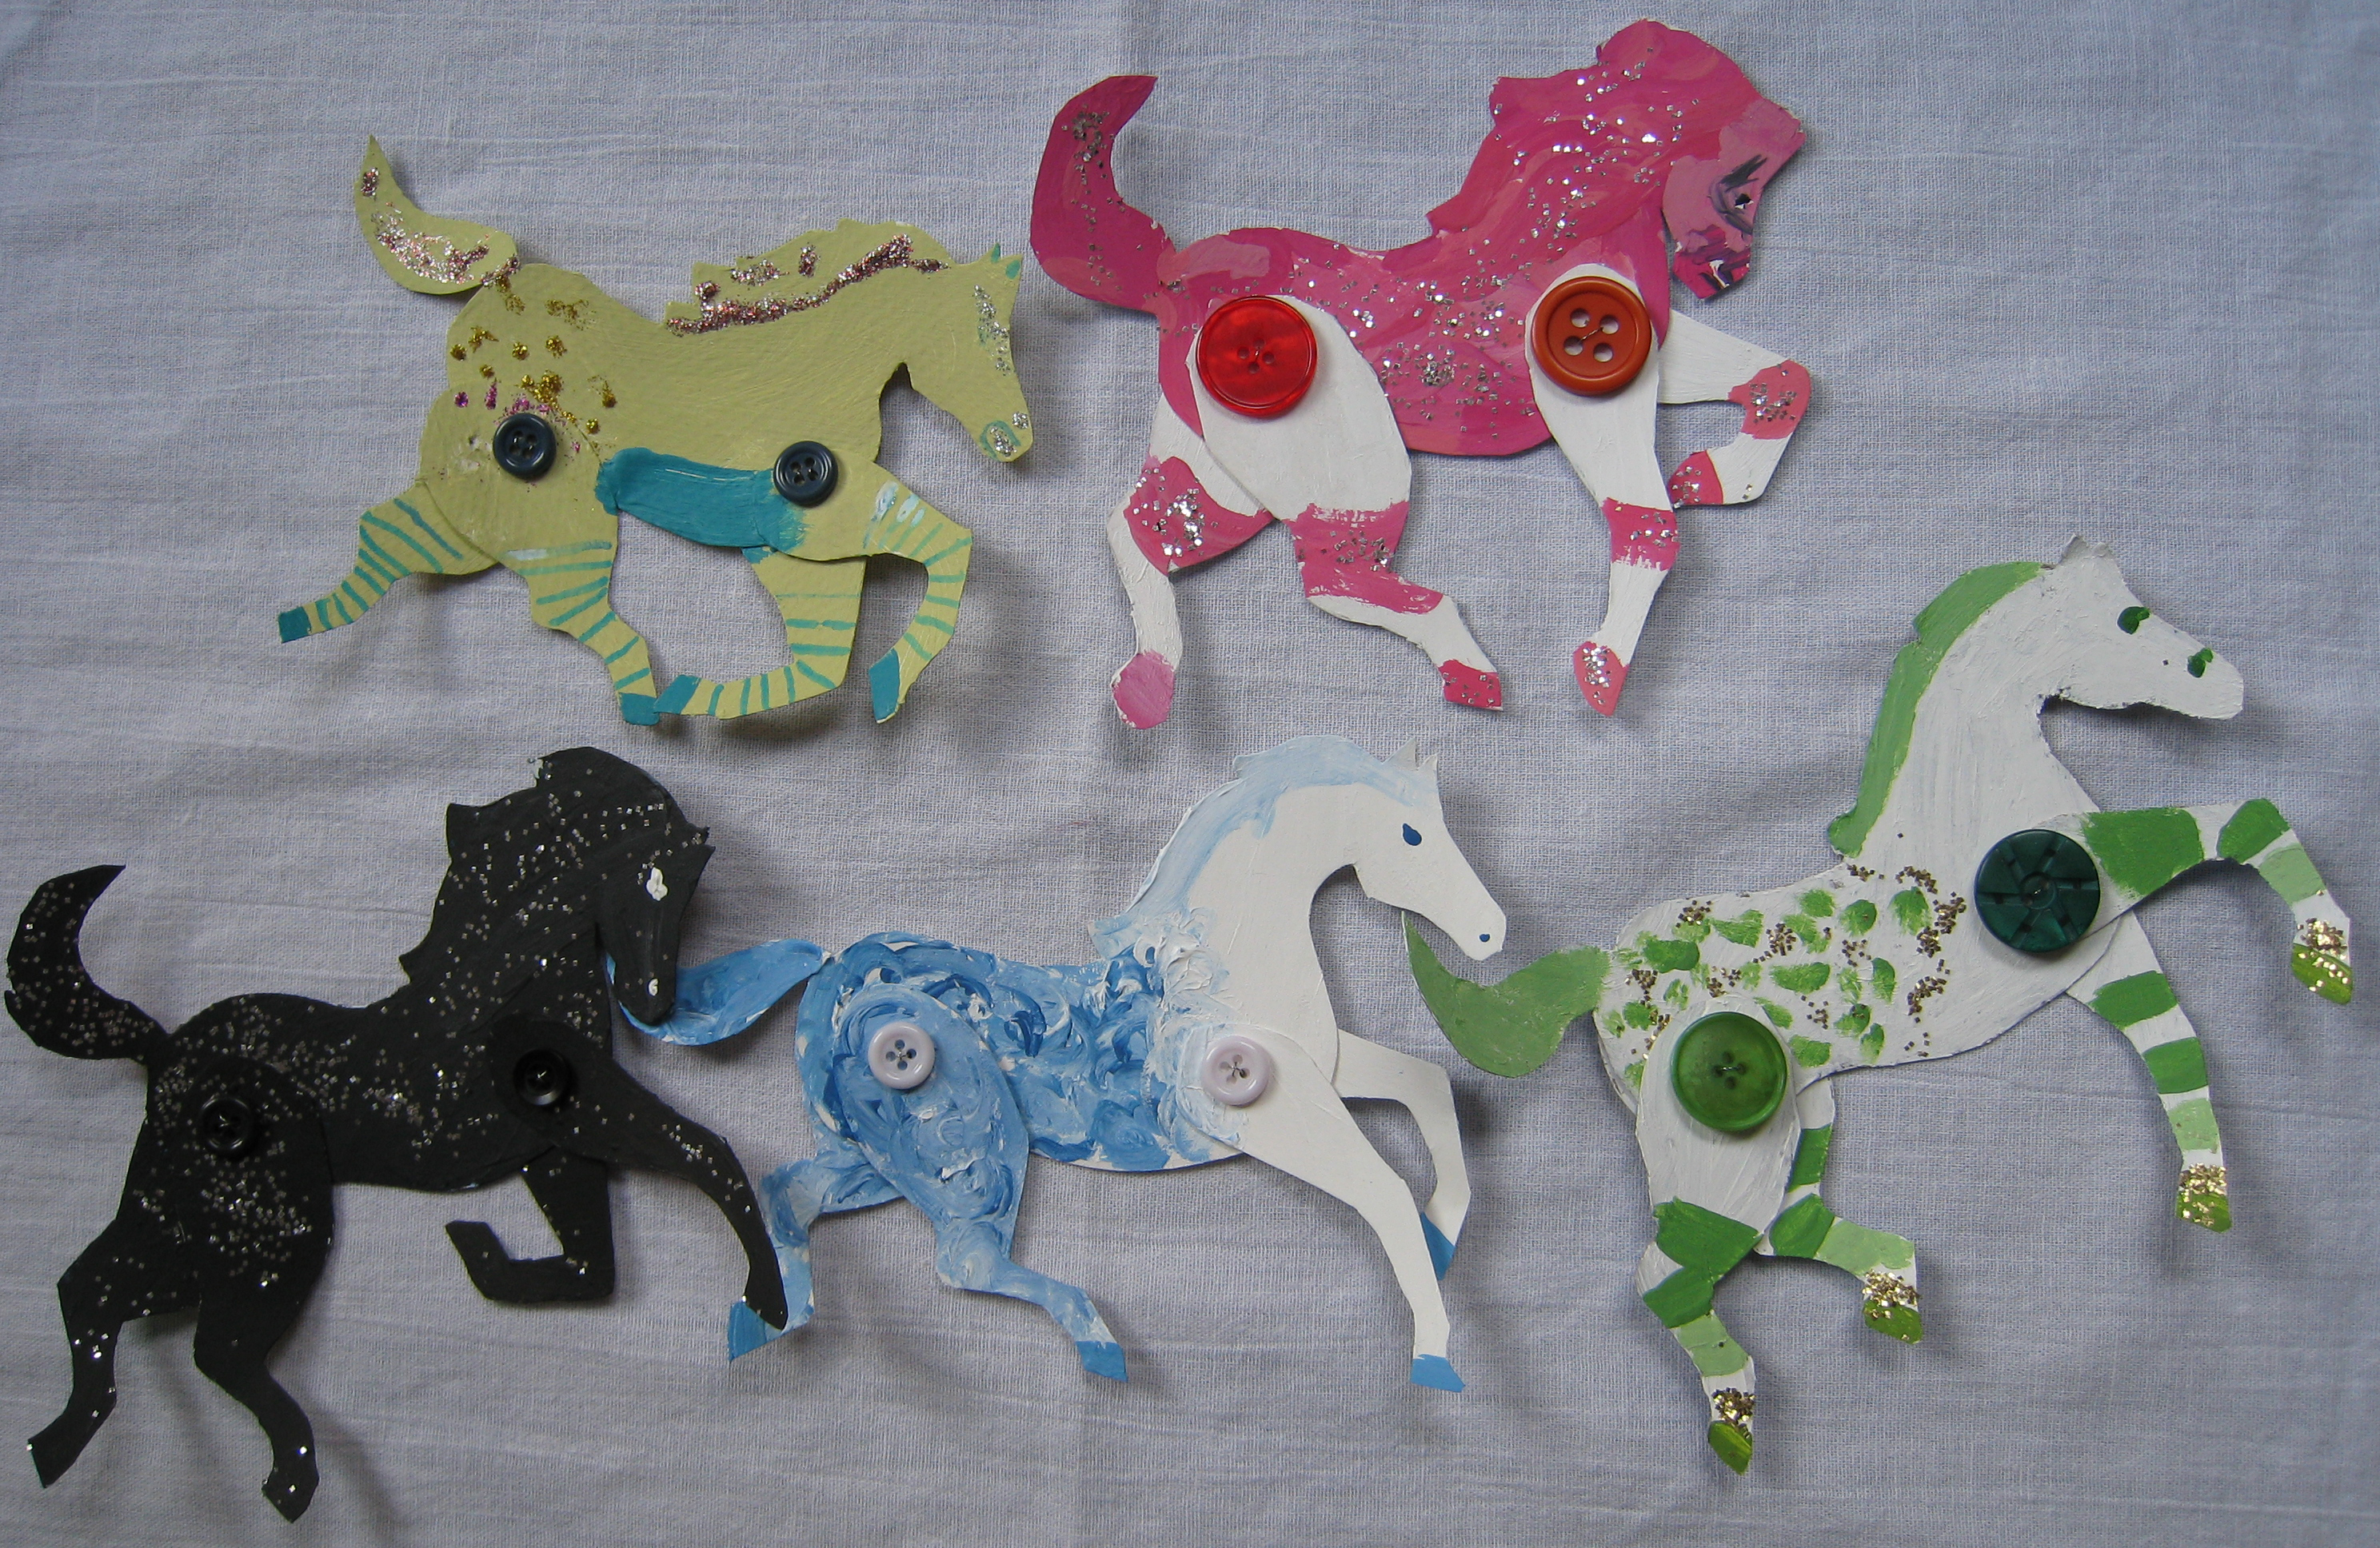 7 horse on pinterest horse crafts horses and stick horses for Horse crafts for kids